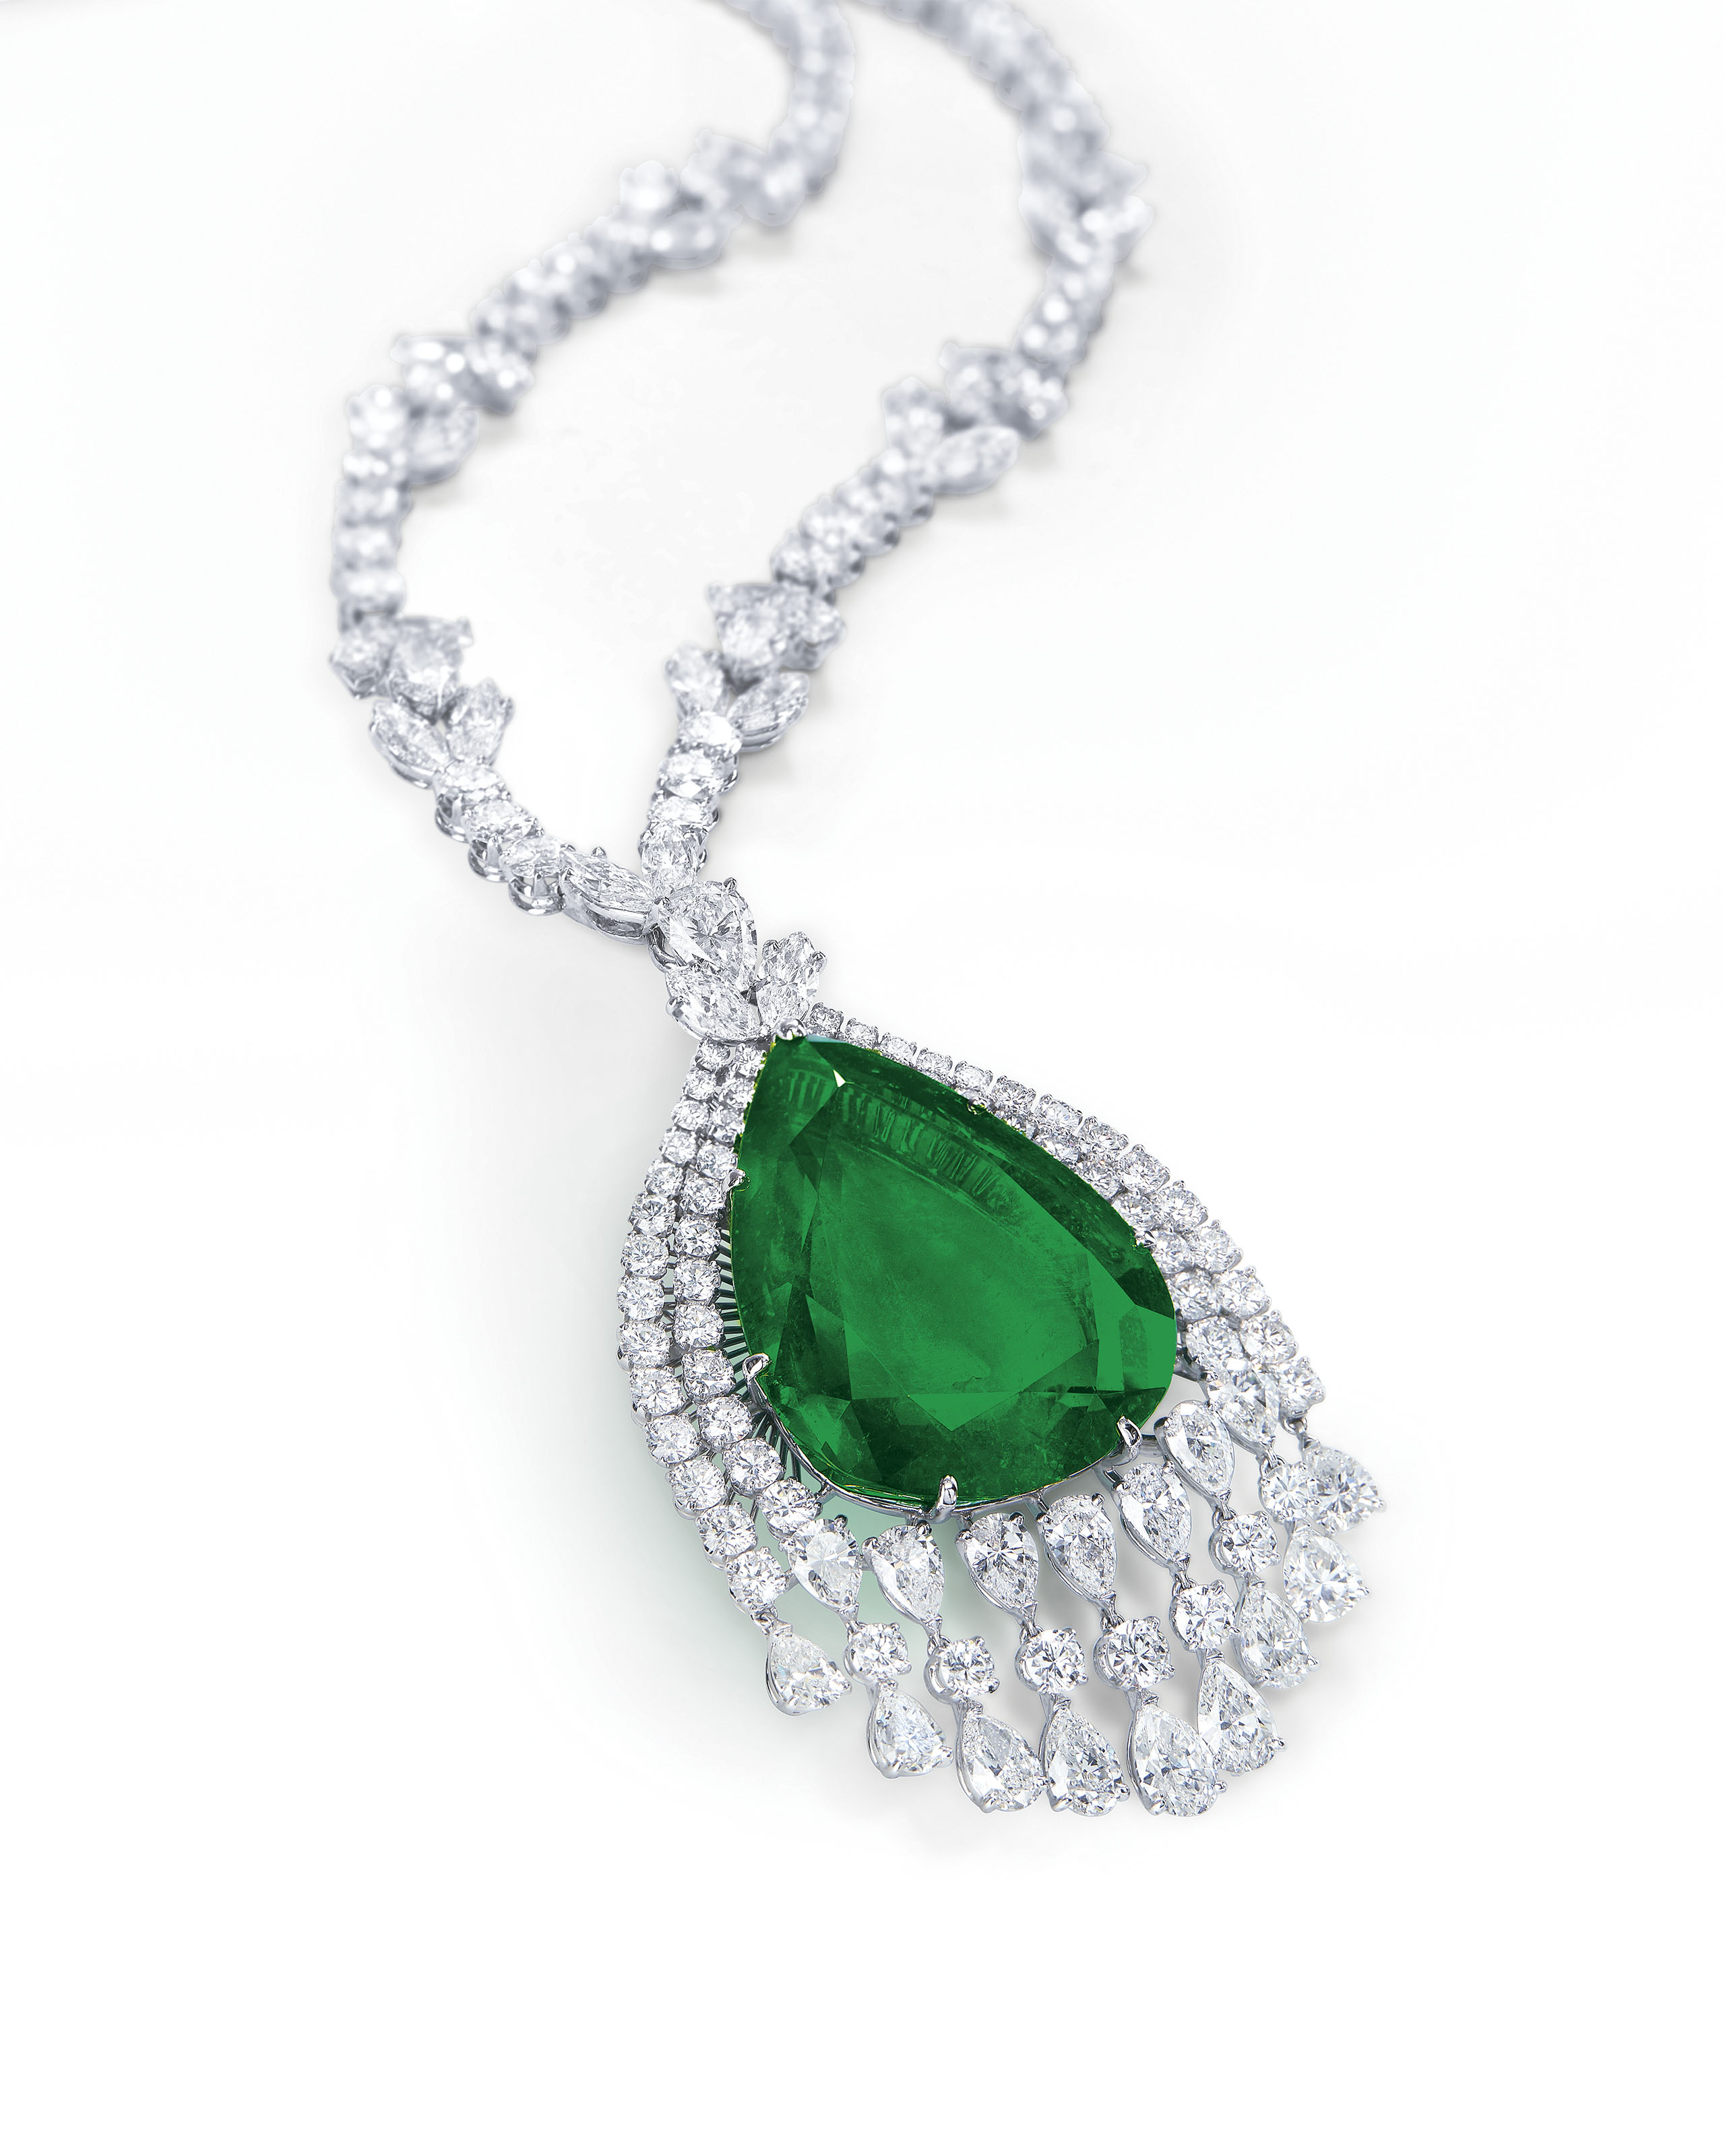 SUPERB EMERALD AND DIAMOND PENDENT NECKLACE